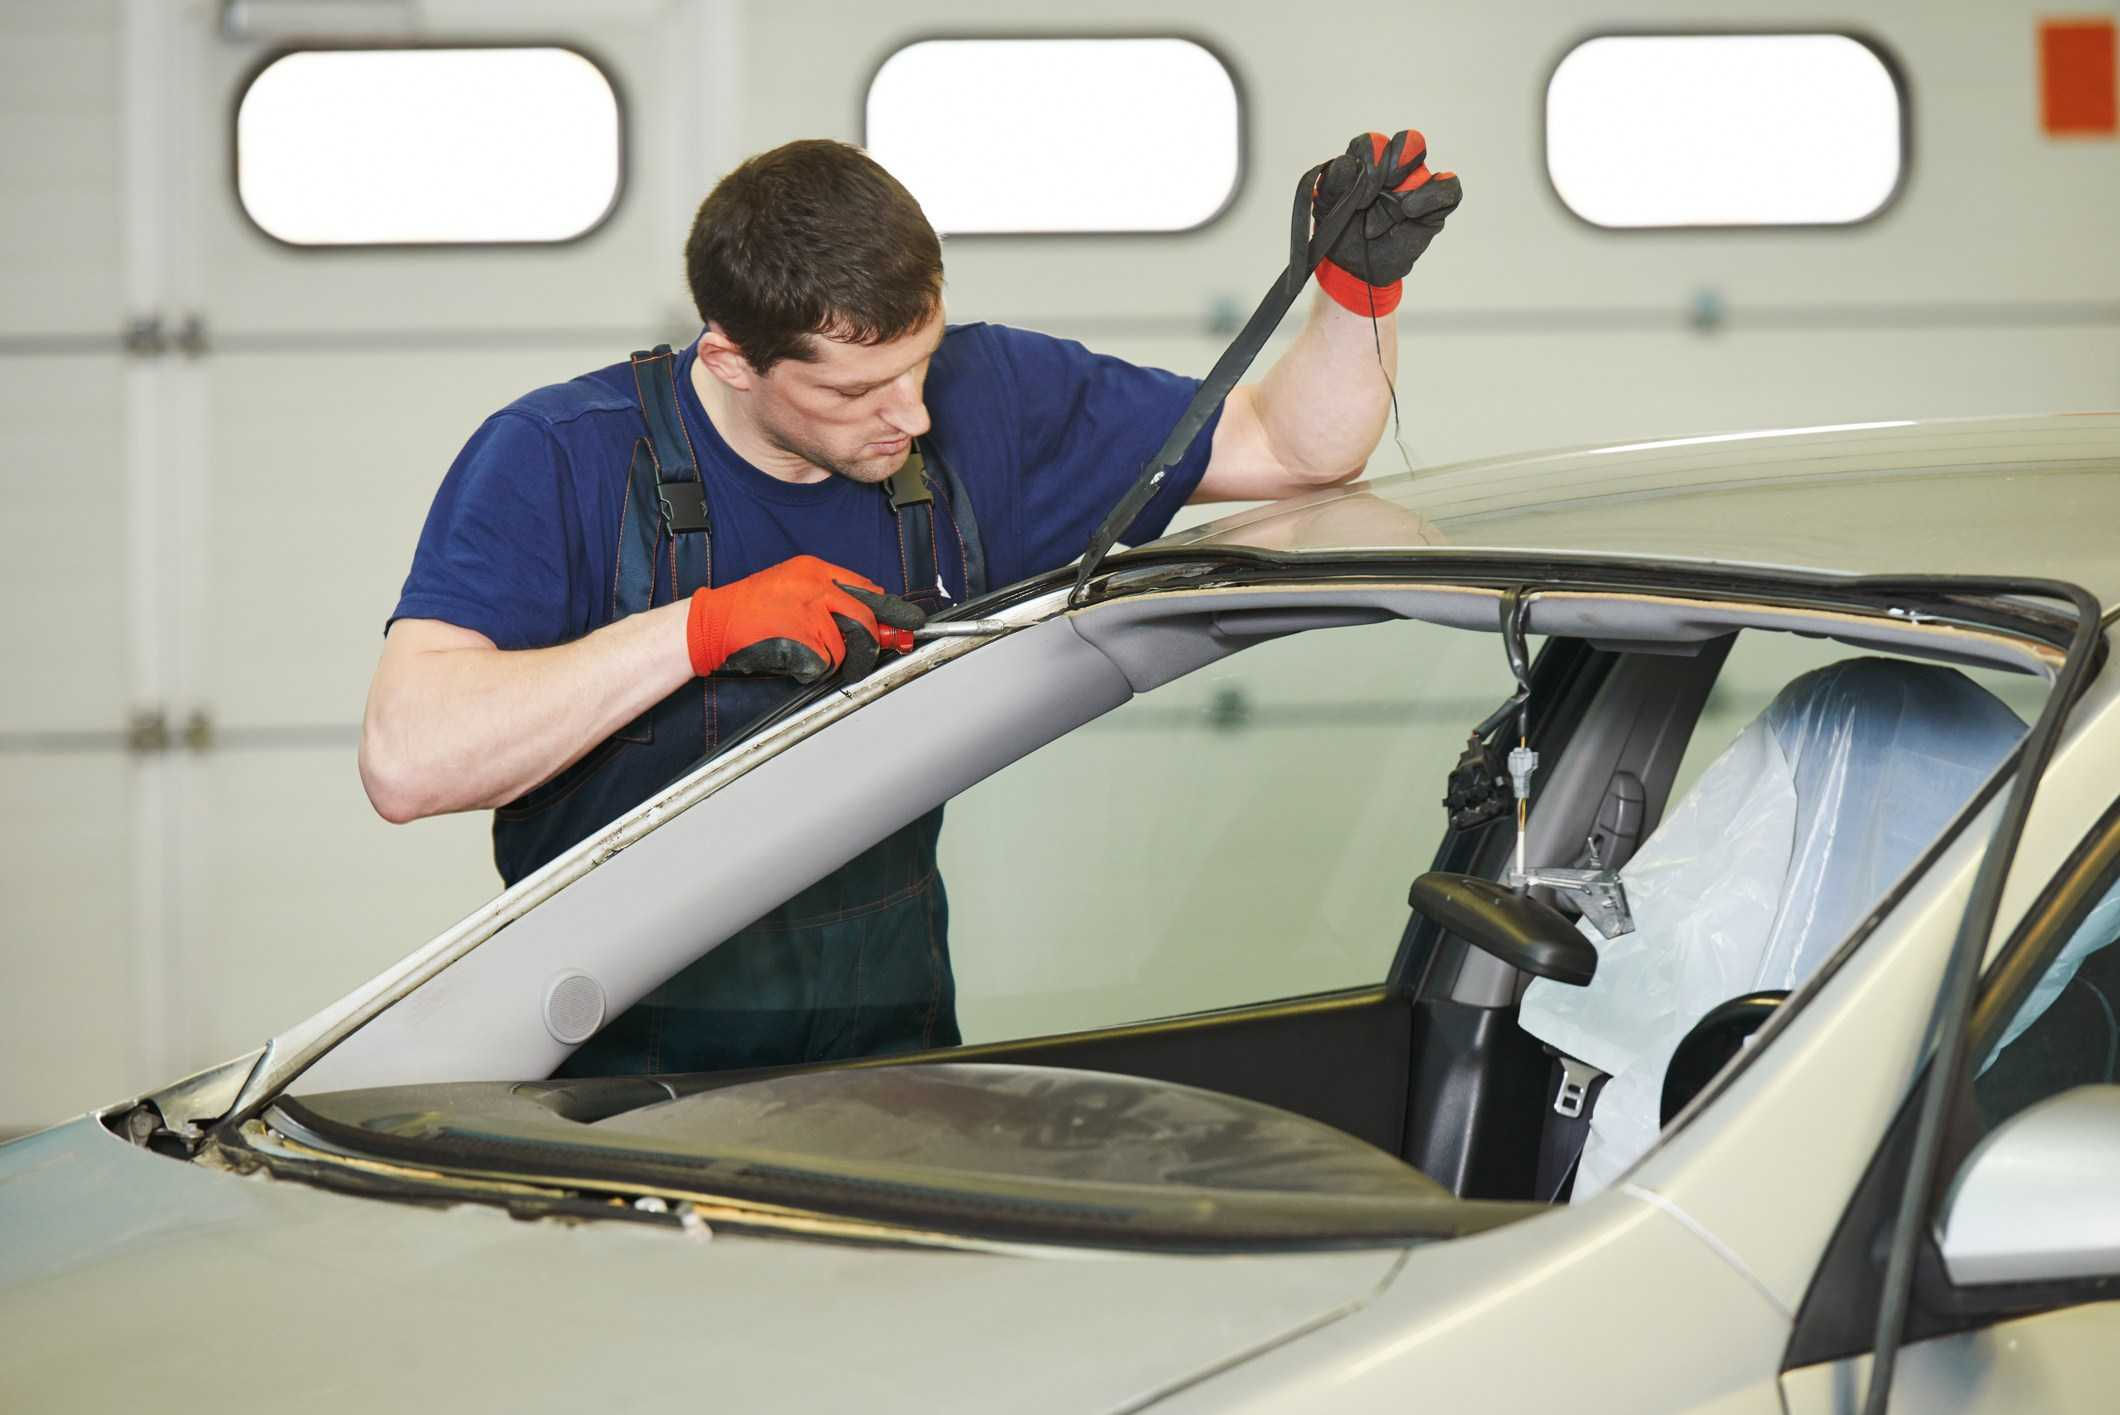 Windshield Replacement And Auto Glass Repair Dc 202 559